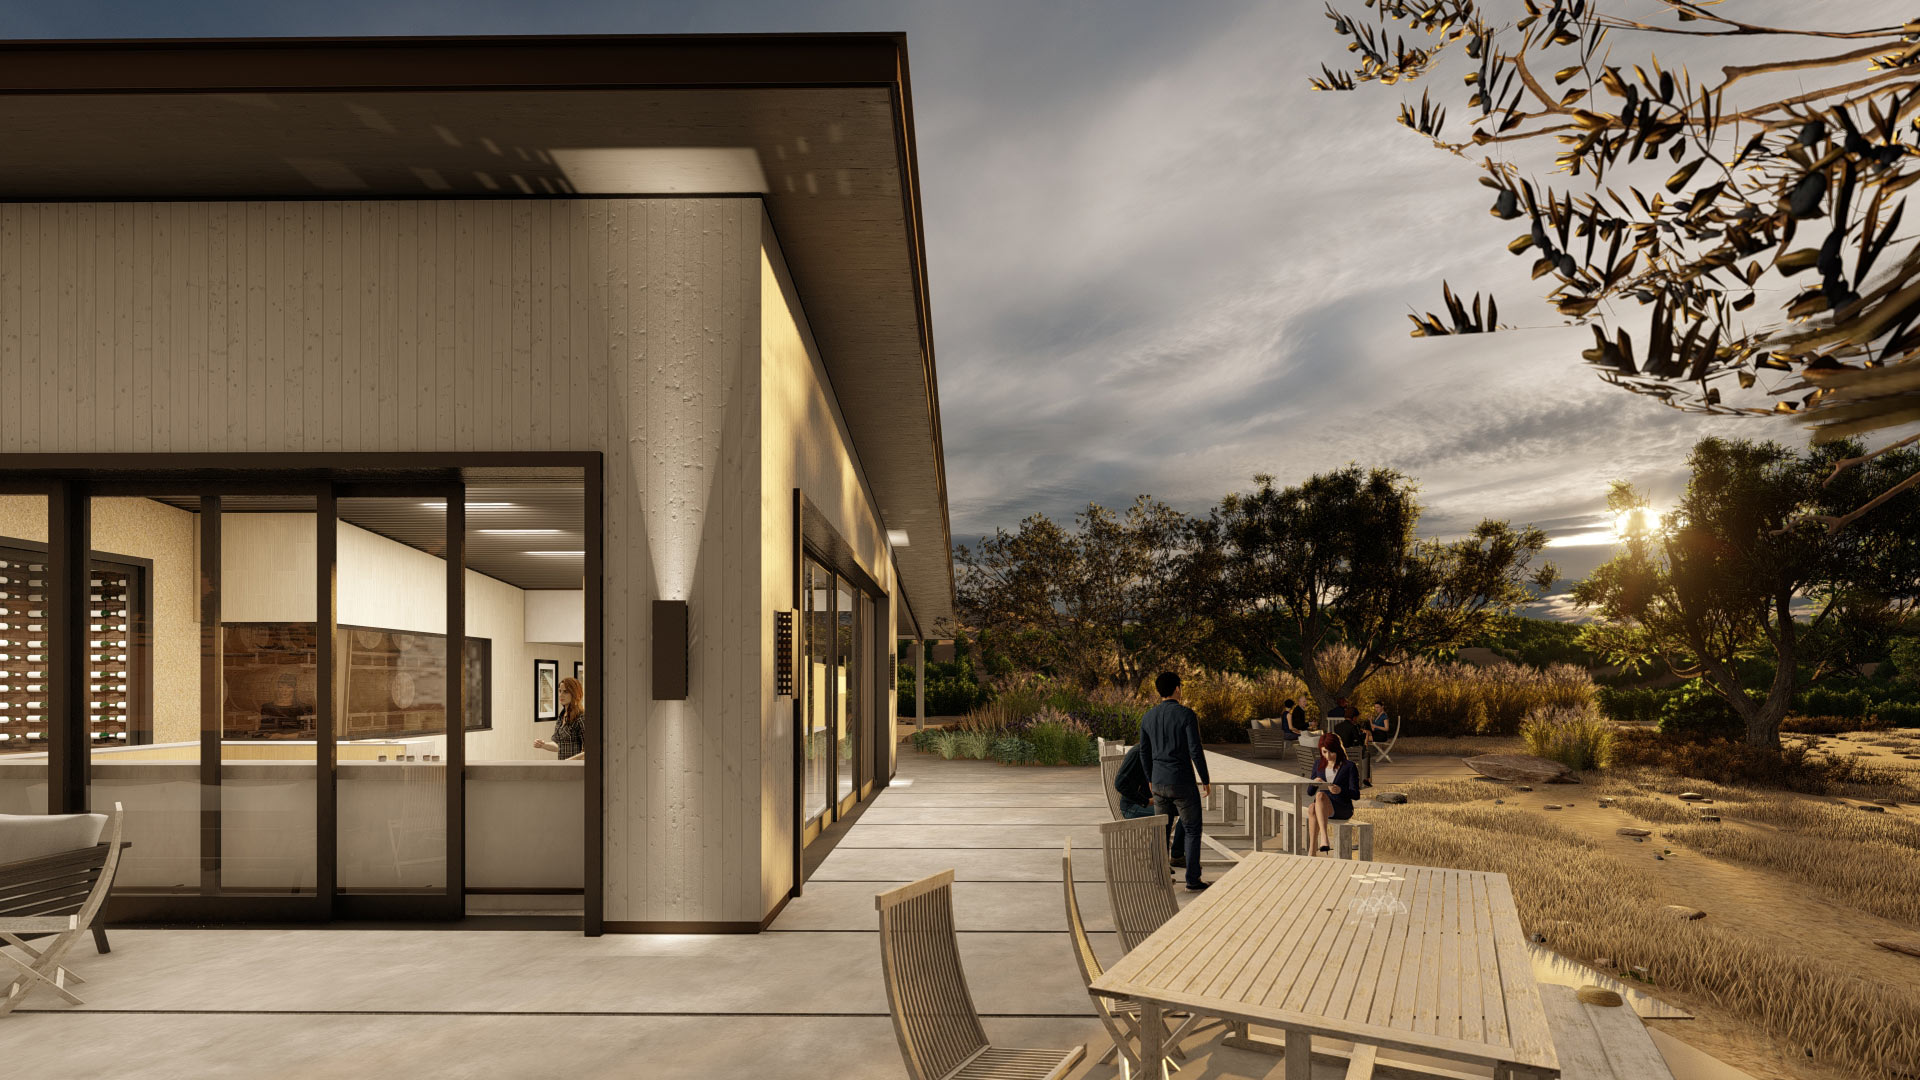 Winery image from the outside | Lumion rendering